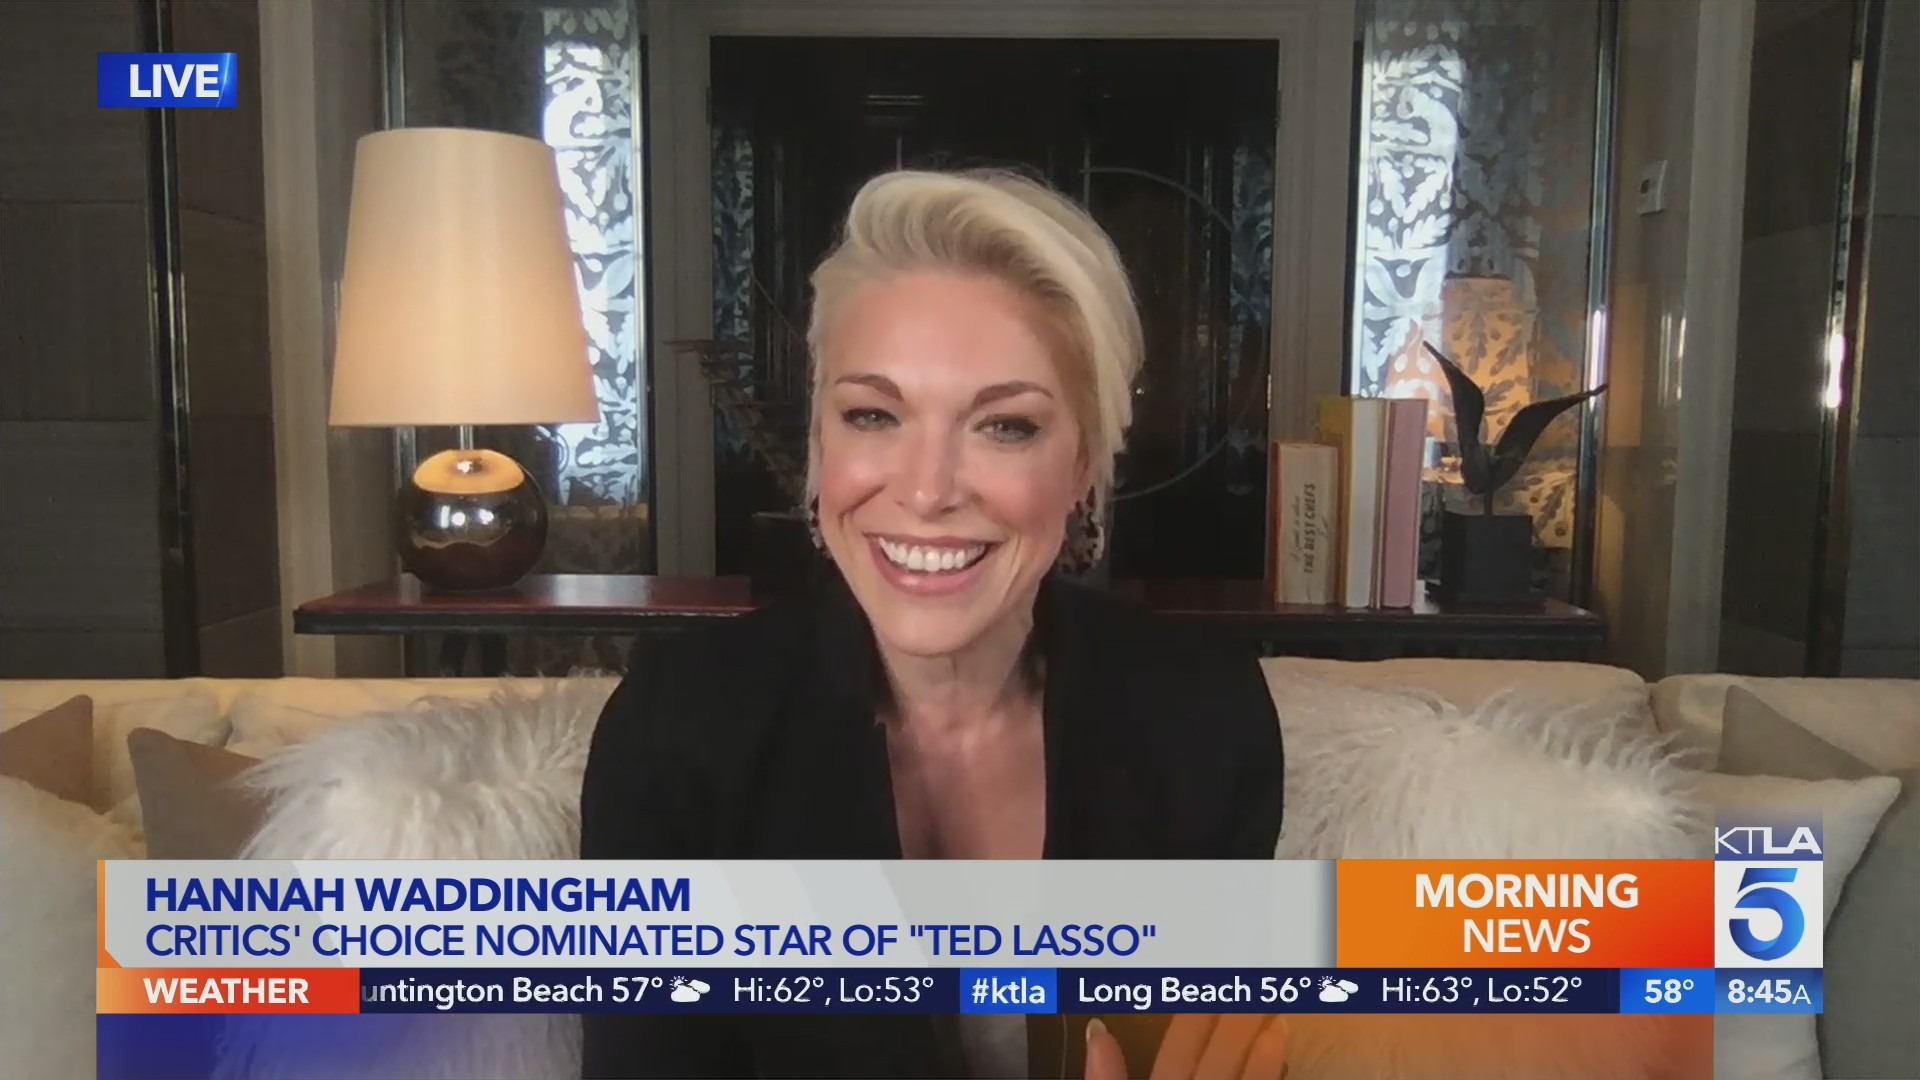 Ted Lasso star Hannah Waddingham